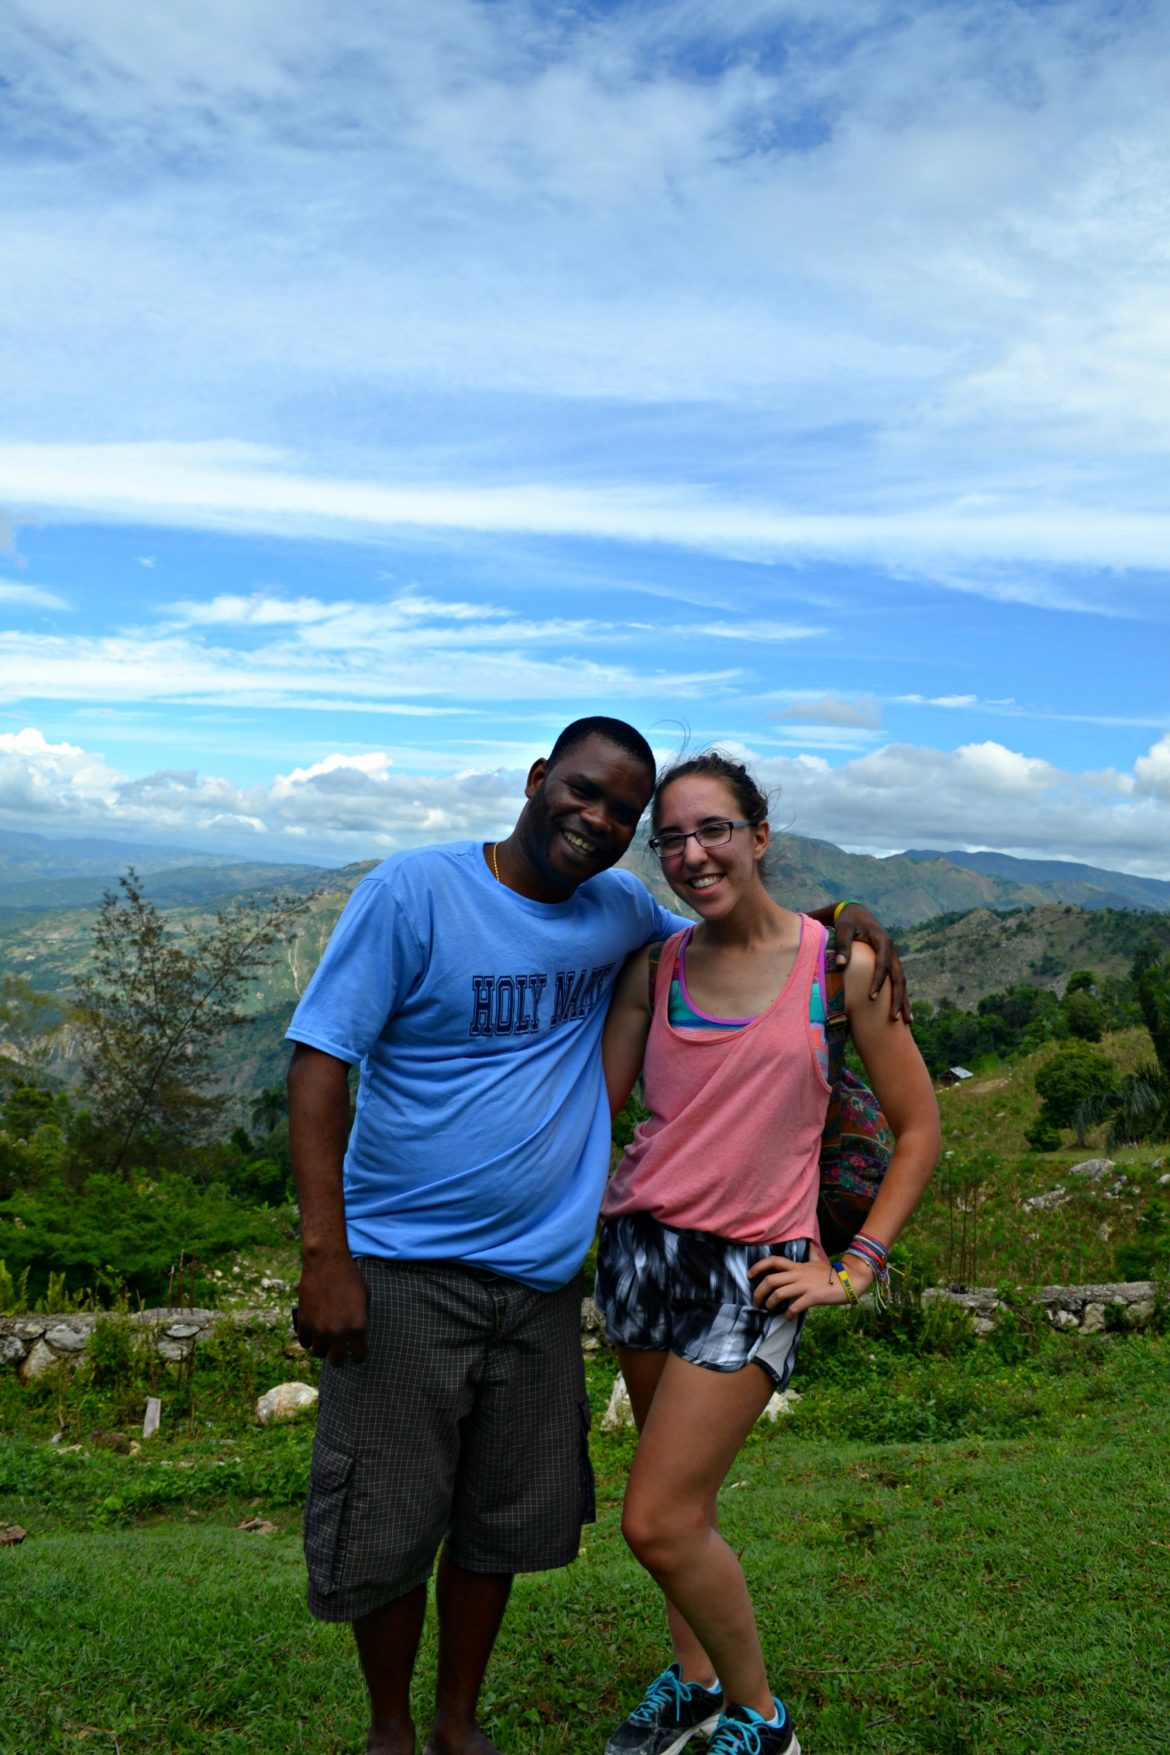 Me and Francky, one of the Haitian BLB staff members who helps lead Britsionary trips.